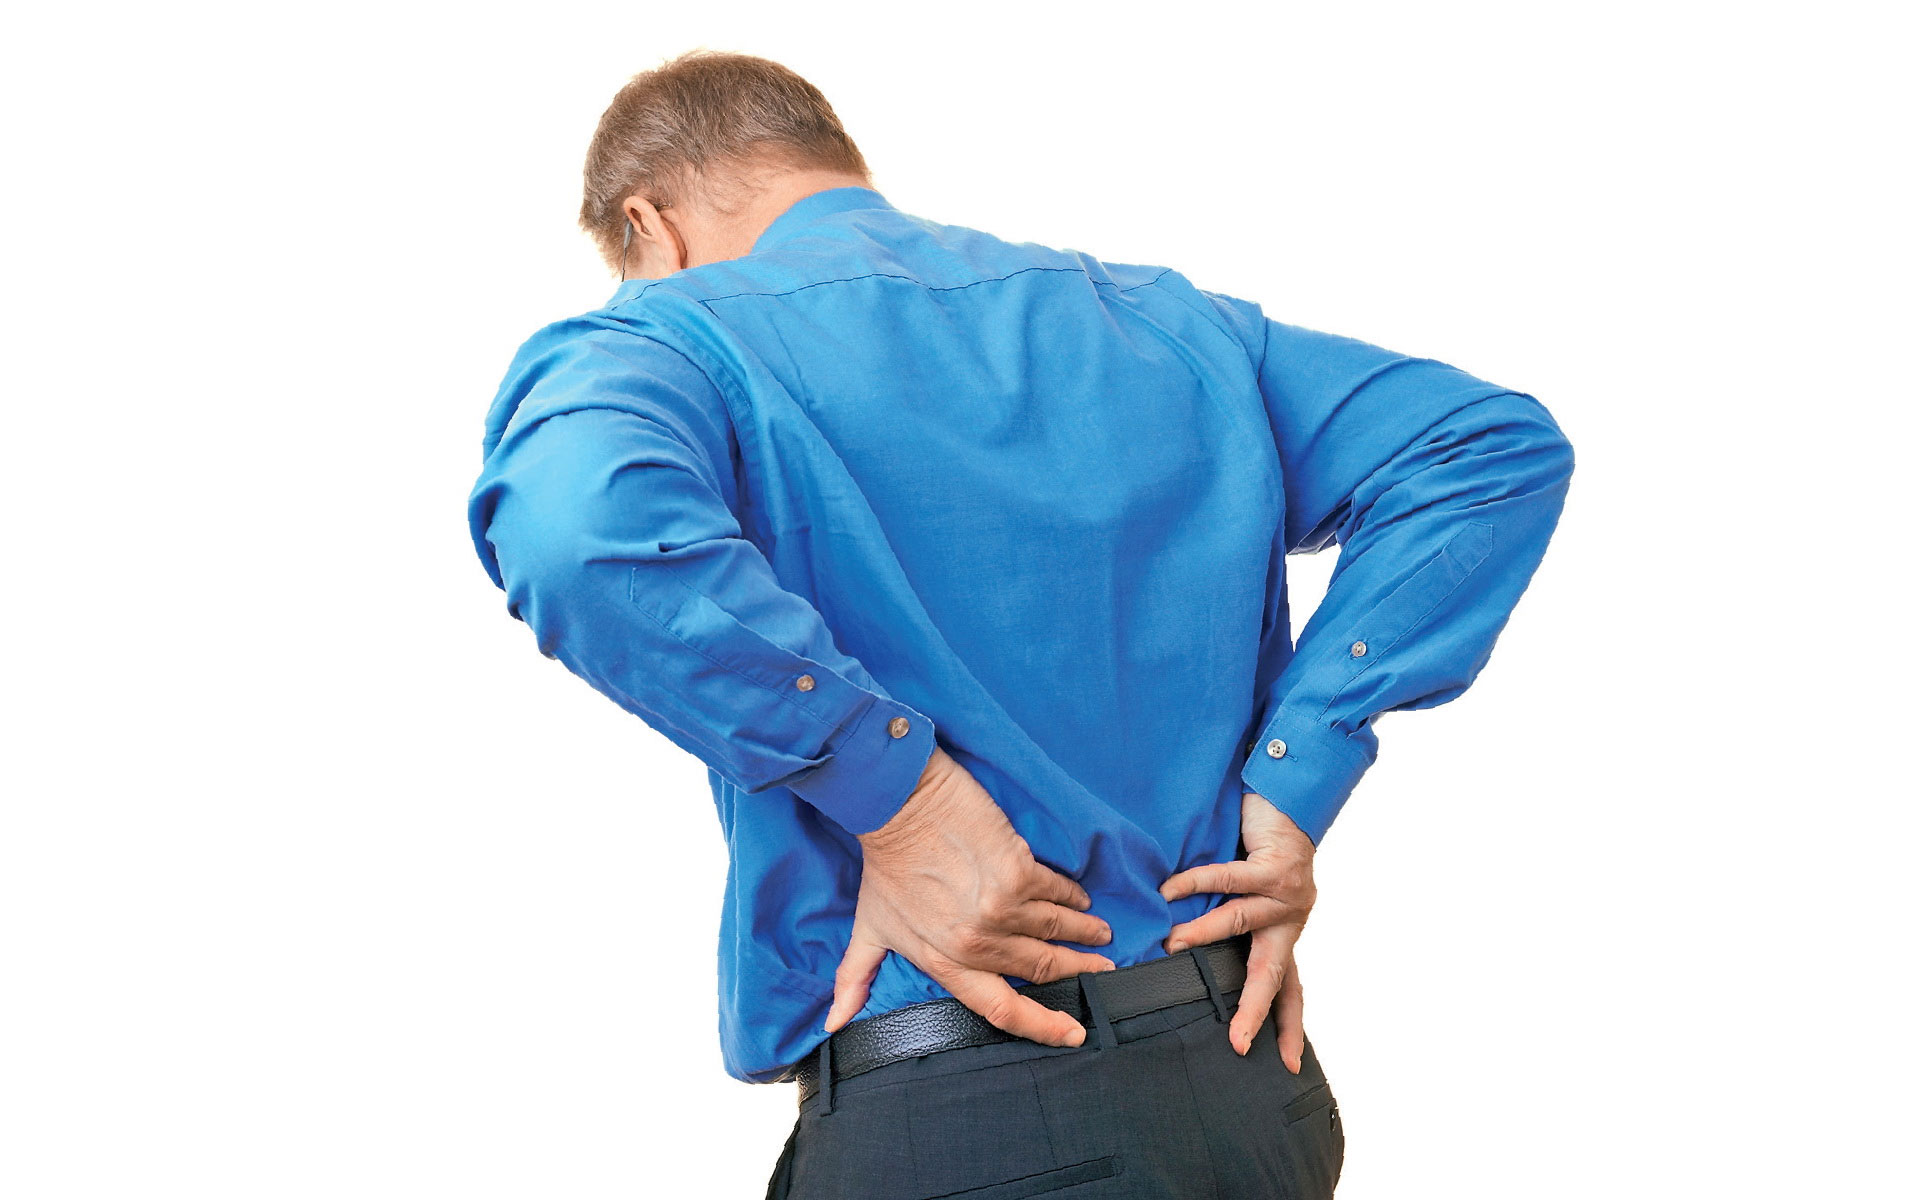 Reducing Recurrent Lower Back Pain